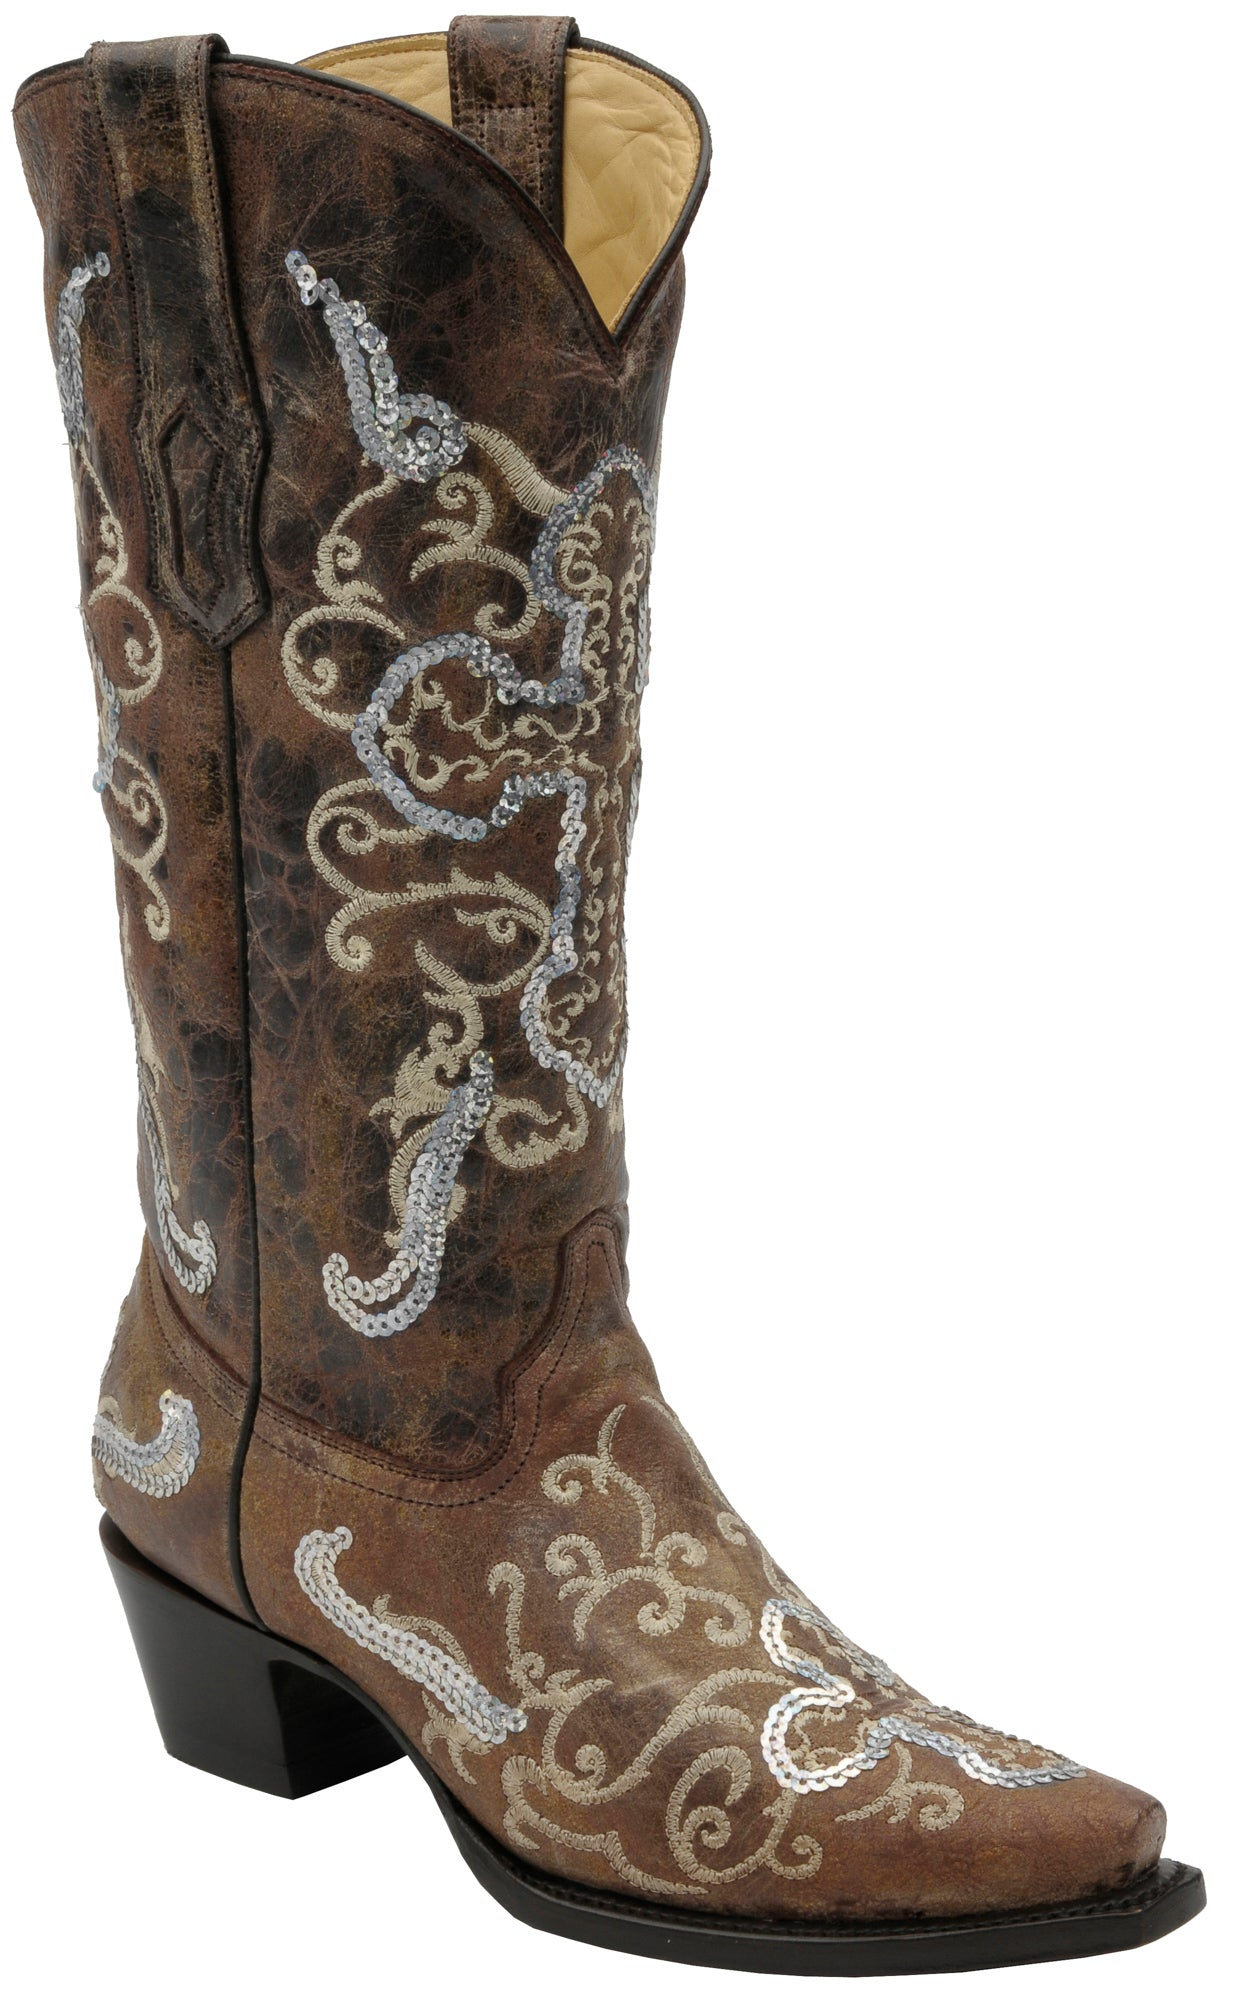 3d4fbdba2f3 Corral Boots Womens Leather Cross Sequence Brown Tobacco Cowgirl